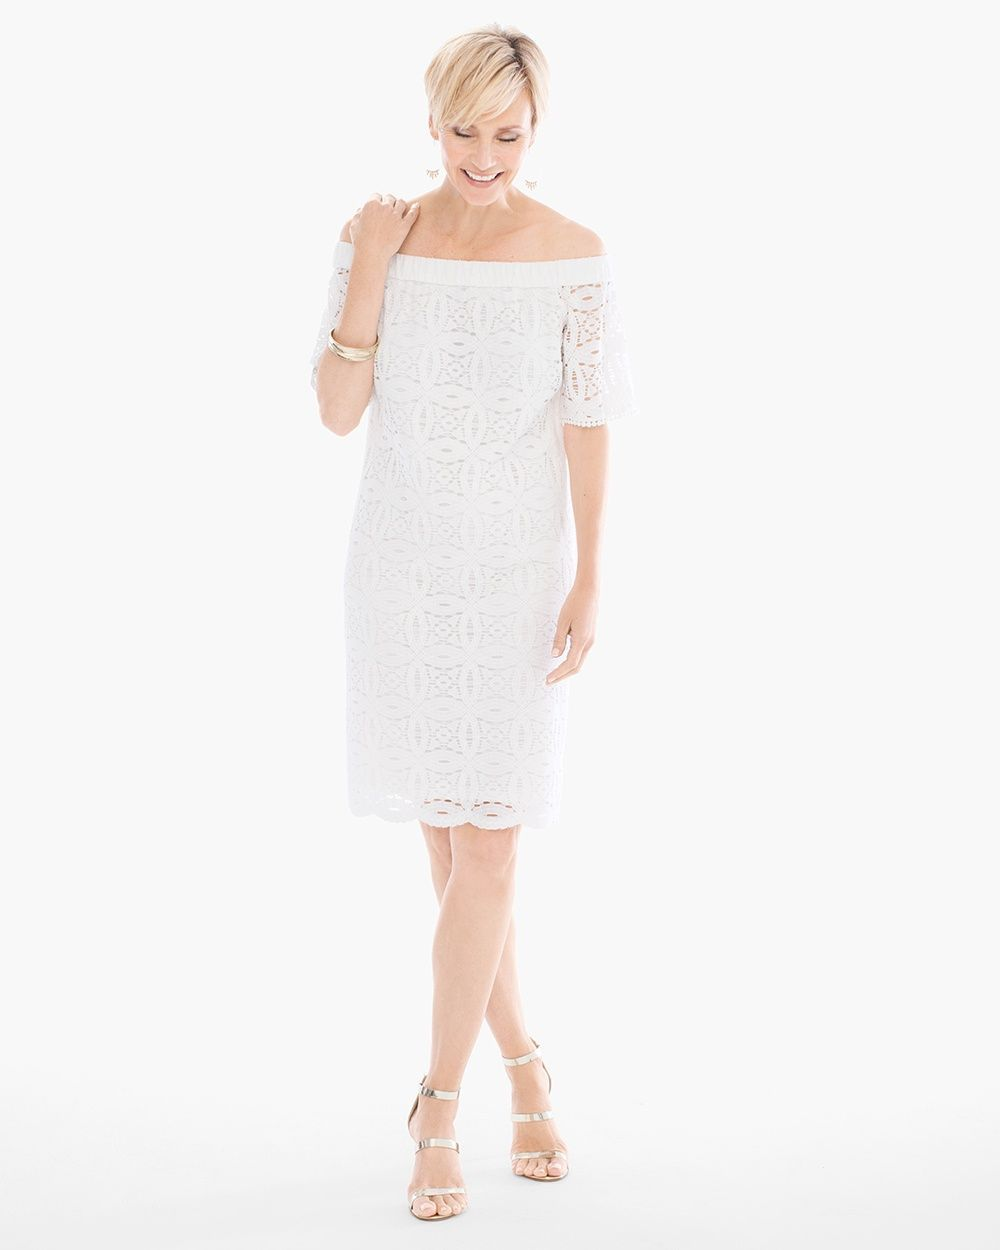 51b6a743db86 Chico s Women s Lace Off-the-Shoulder Dress